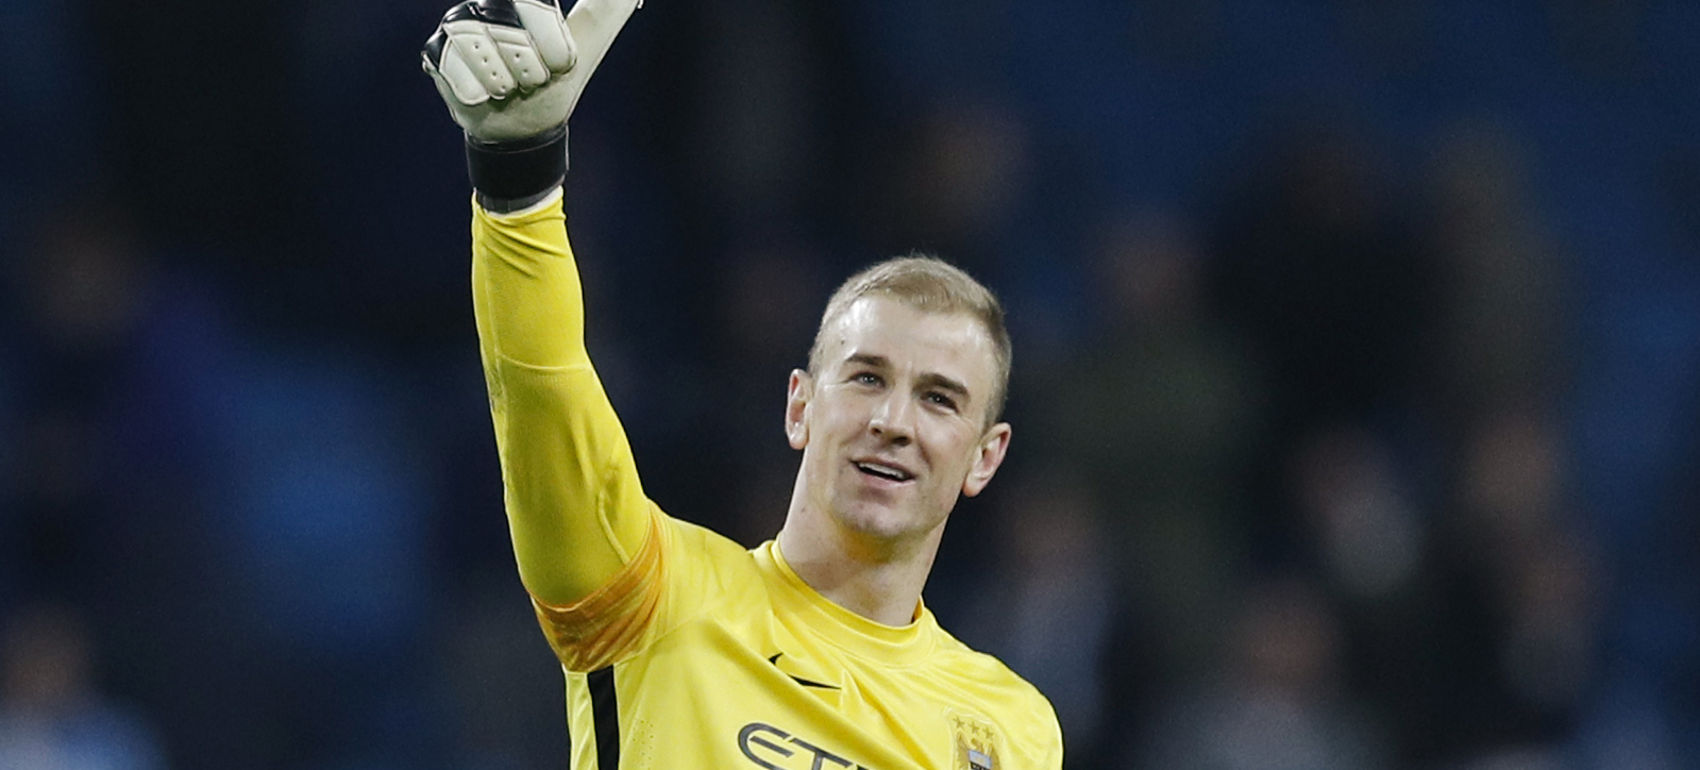 → Joe Hart was FPL's highest-scoring goalkeeper in 2011/12. Which £4.0m shotstopper finished second behind him on 158 points?